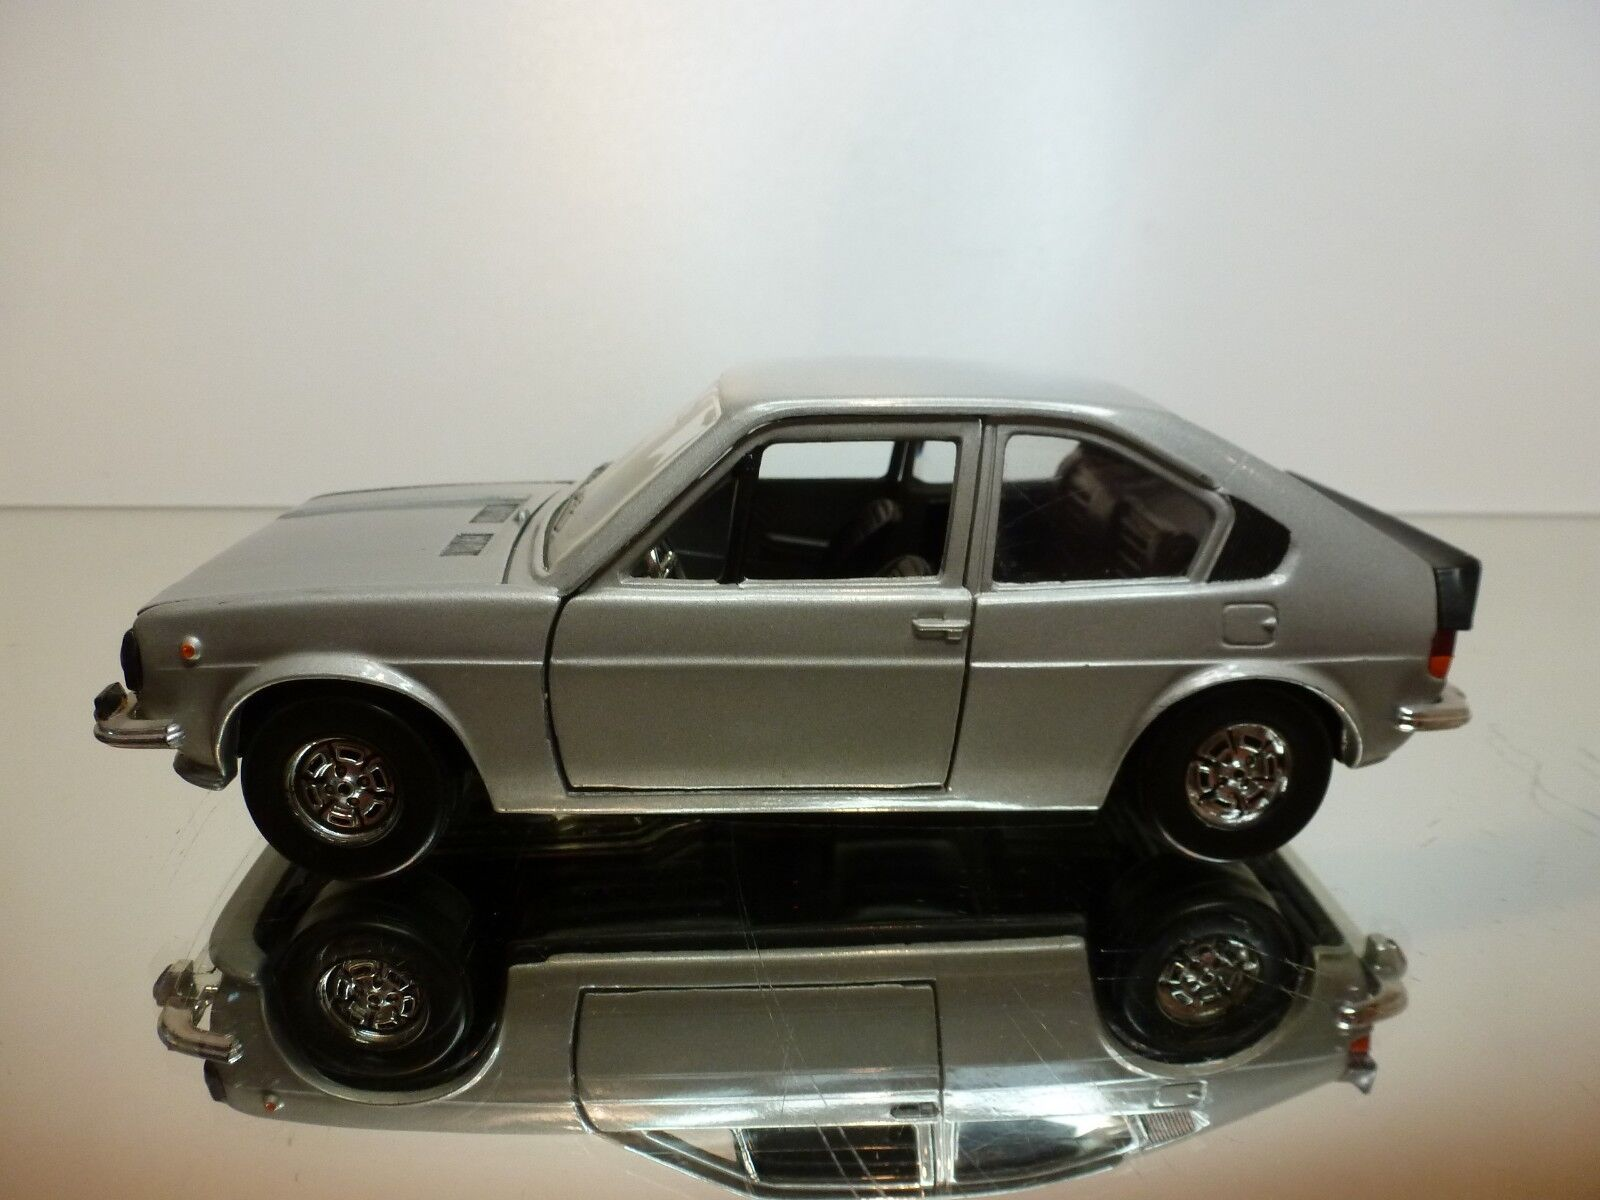 POLISTIL S41 ALFA ROMEO ALFASUD ti - GREY METALLIC METALLIC METALLIC 1 25 - VERY GOOD CONDITION d0e0b8